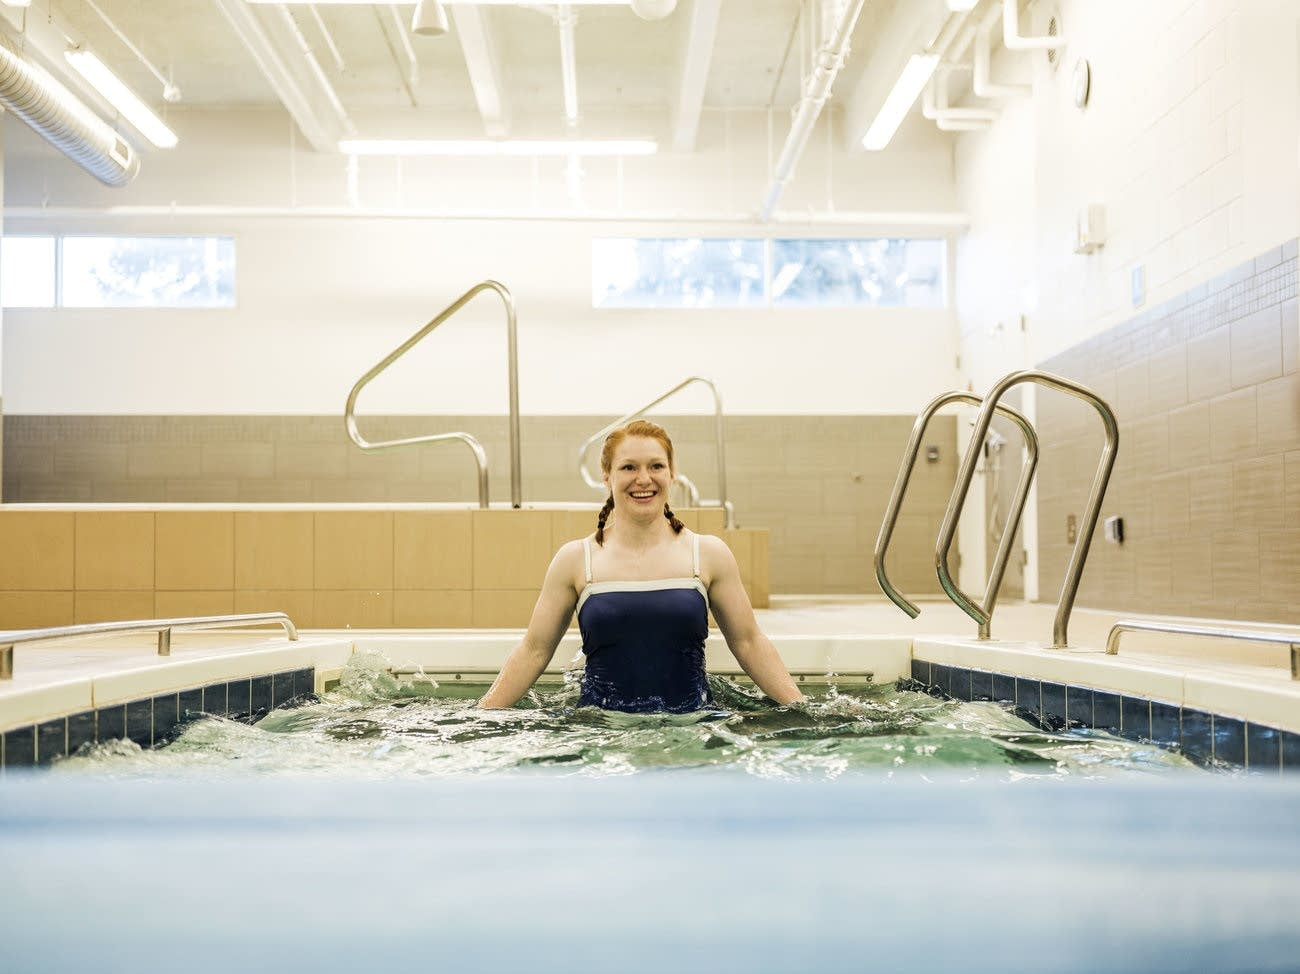 Team USA wrestler Jennifer Page trains in a pool.